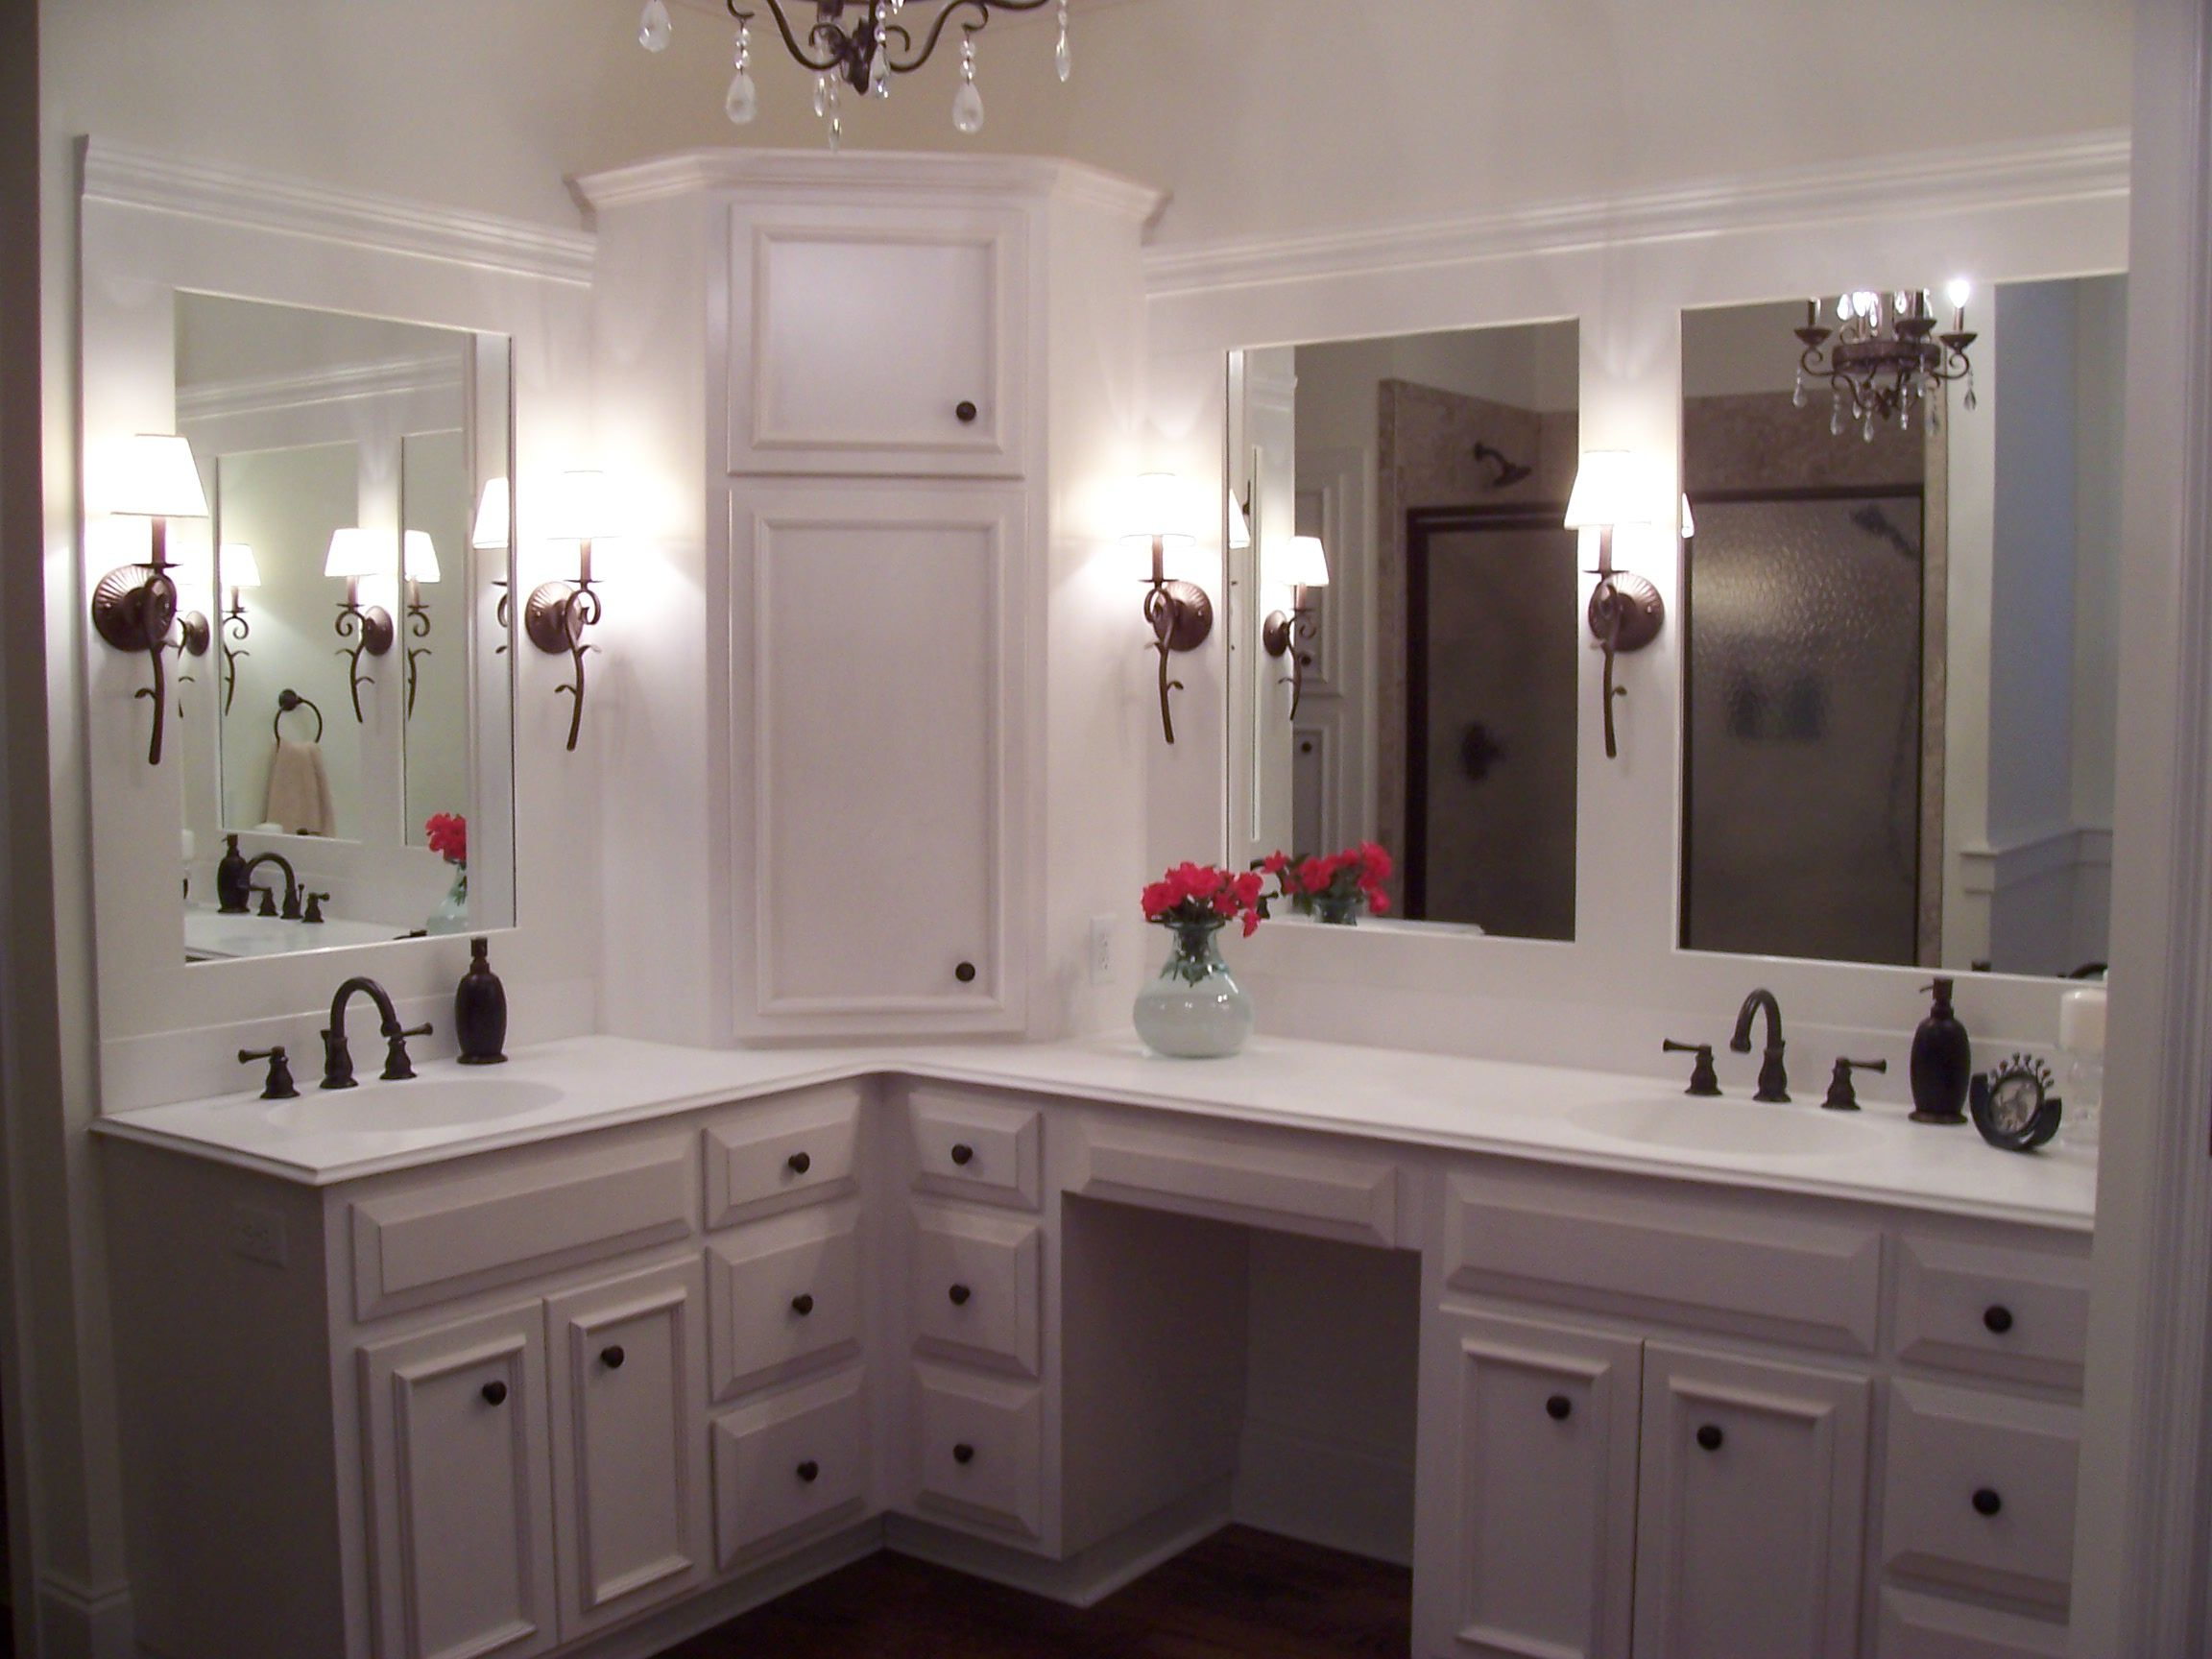 modern vanities custom made intended units vanity built amazing creative bathroom melbourne for decoration throughout